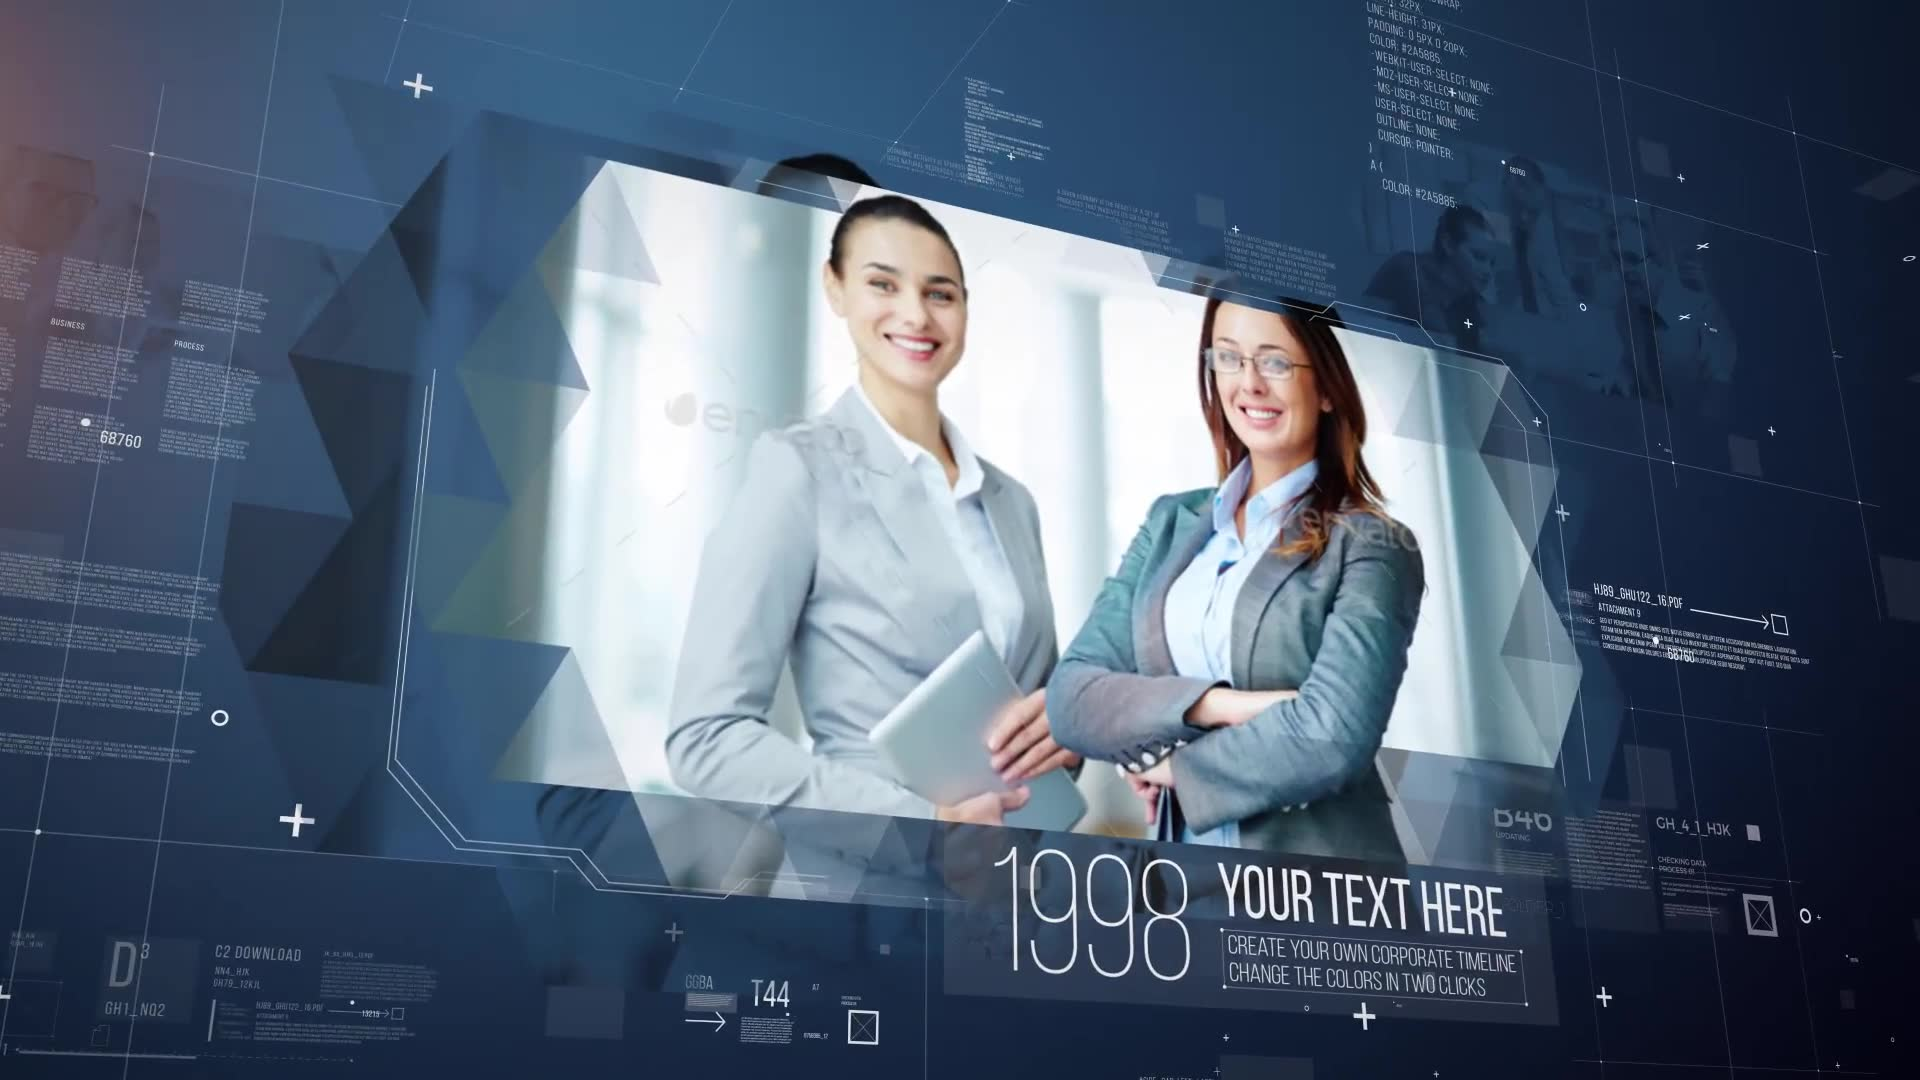 Corporate Timeline - Download Videohive 18996870